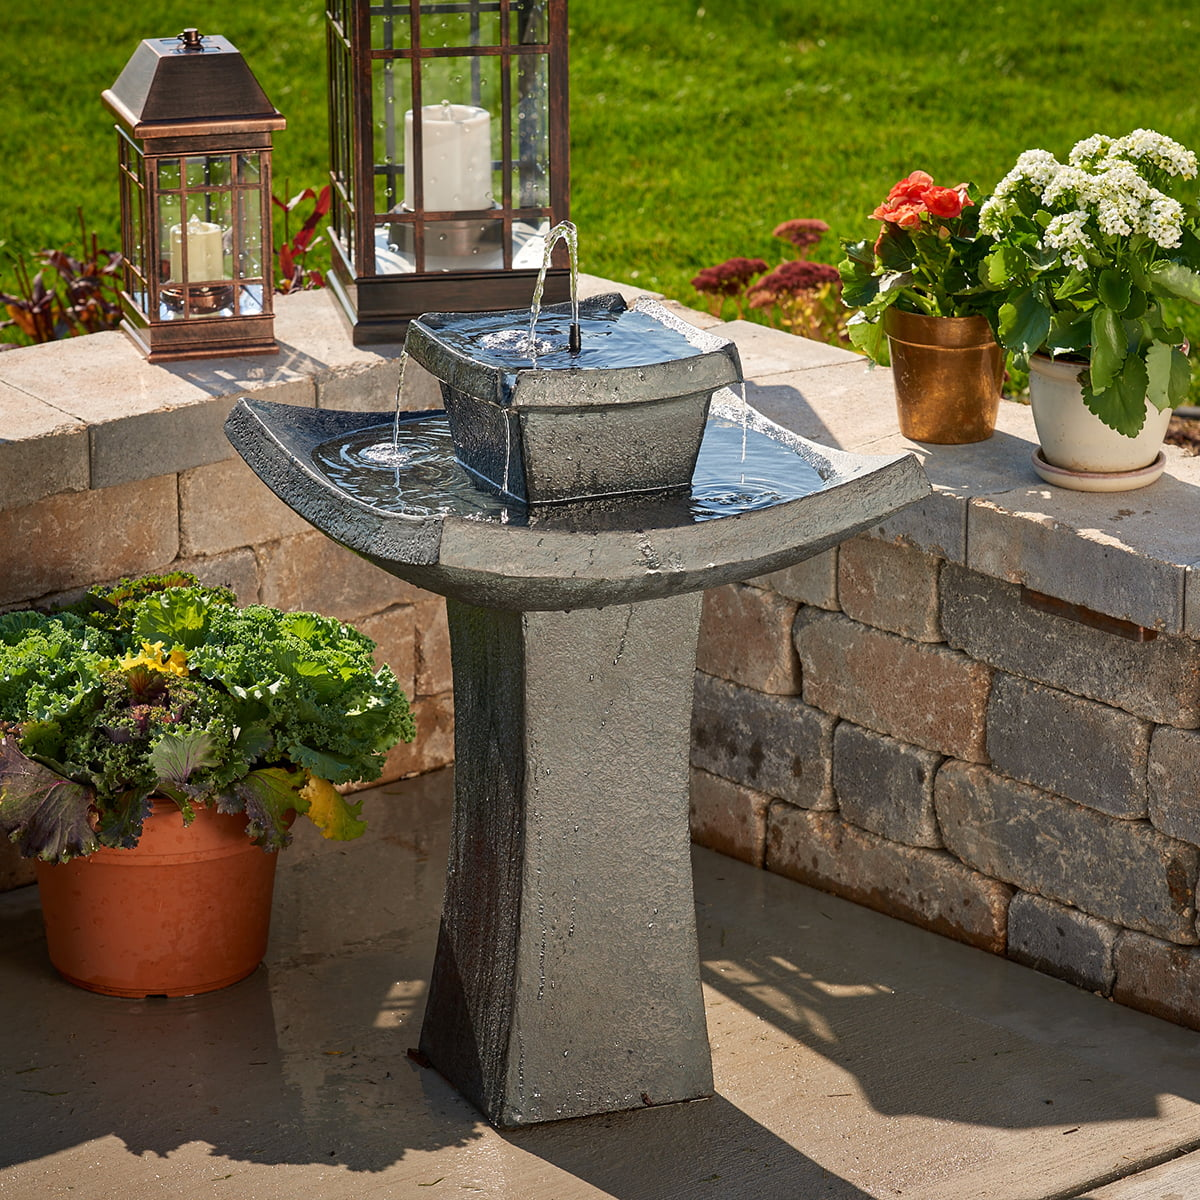 Smart Solar Modern Zen Solar-on-Demand Fountain by Smart Living Home & Garden